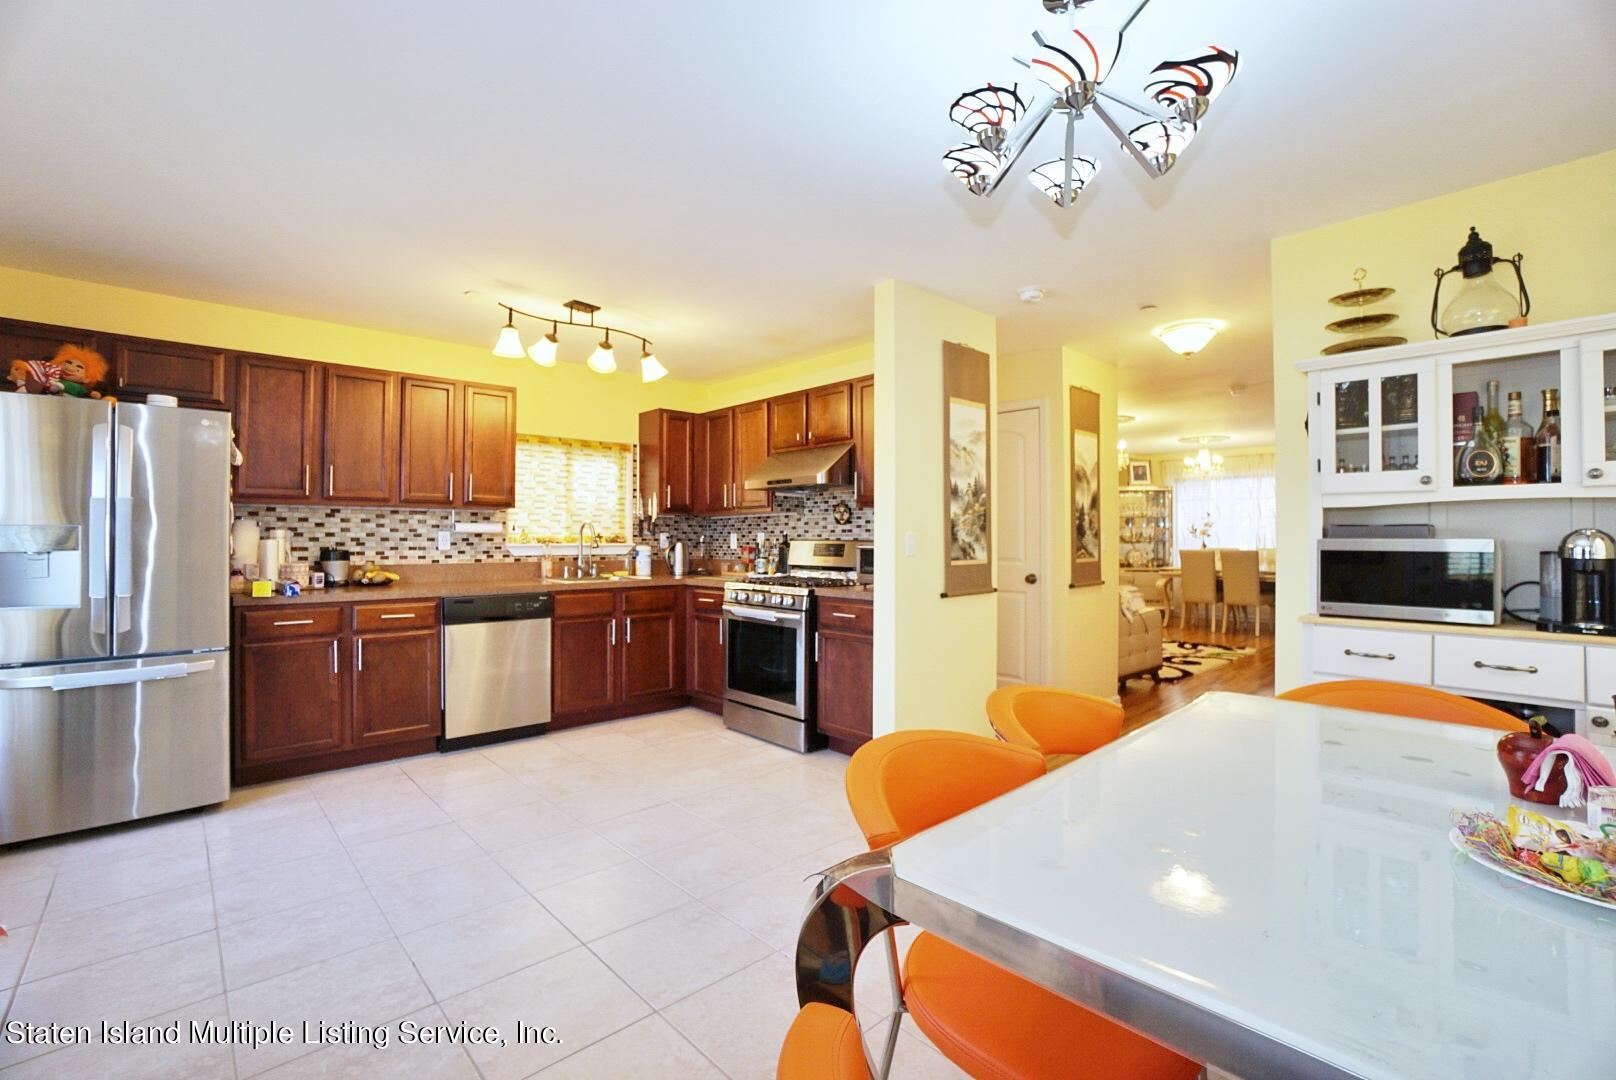 Single Family - Detached 171 Benziger Avenue  Staten Island, NY 10301, MLS-1145235-17